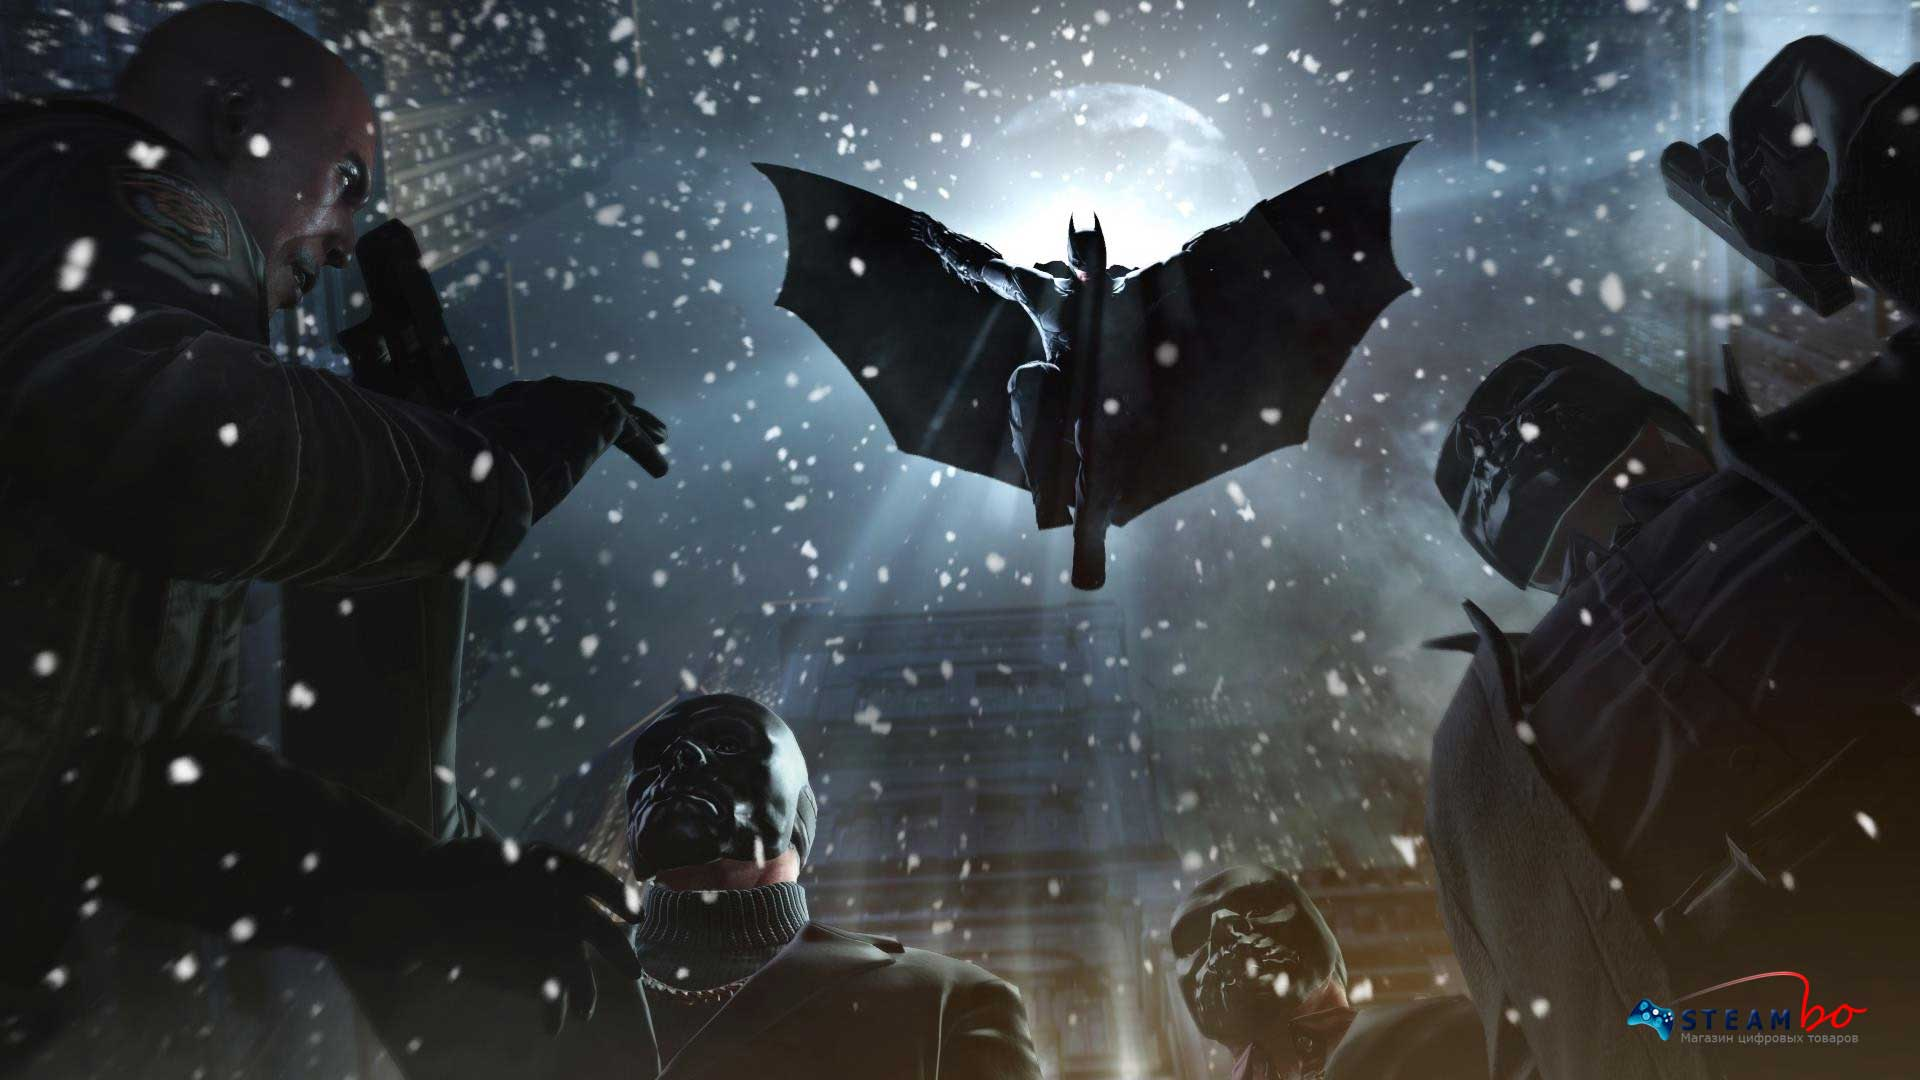 Batman: Arkham Origins RU / CIS (Steam Gift / Key)